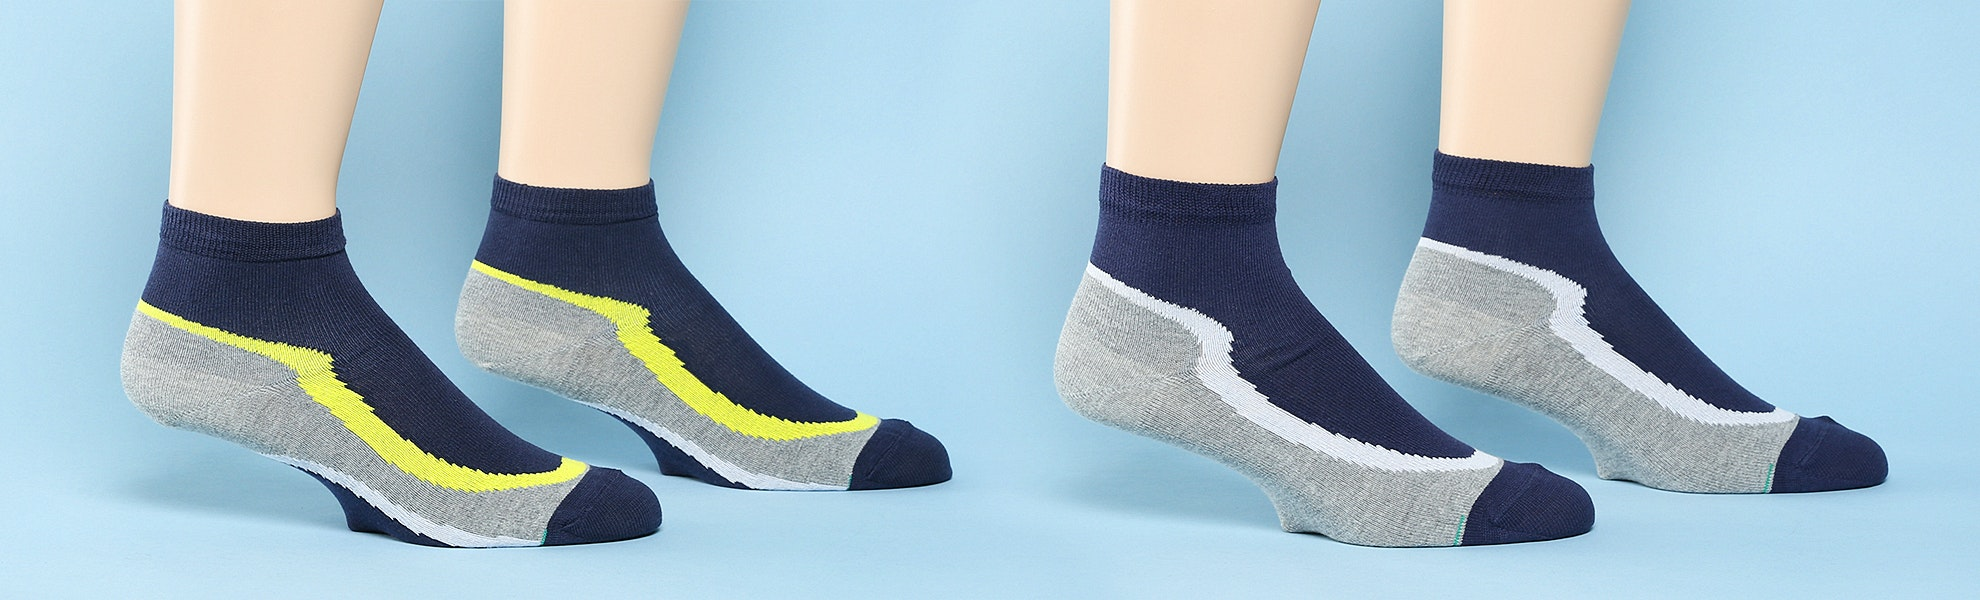 Punto Blanco Summer Ankle Socks